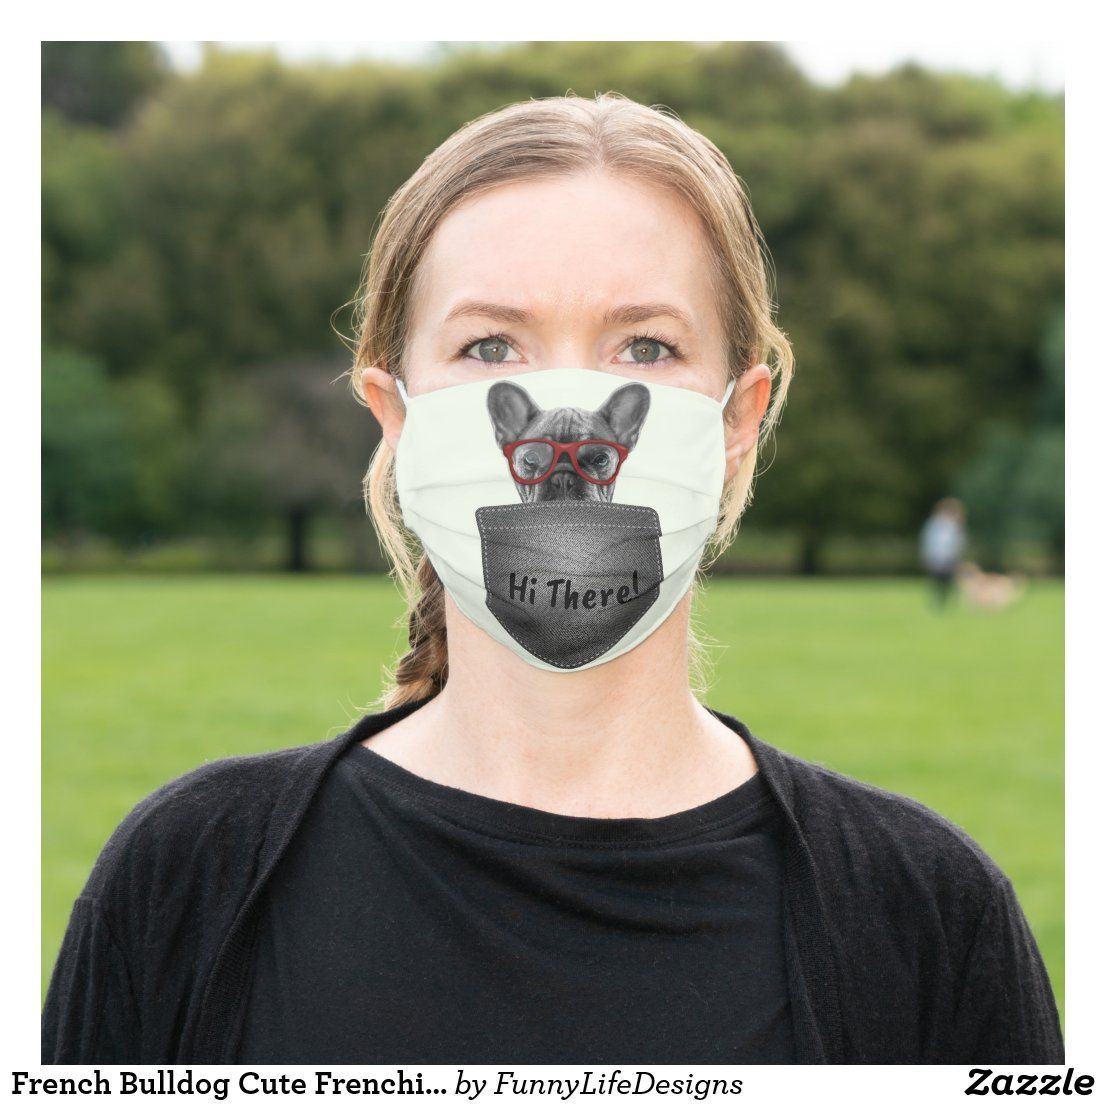 French Bulldog Cute Frenchie Dog Lovers Cloth Face Mask Zazzle Com In 2020 Frenchie Face Mask Bulldog